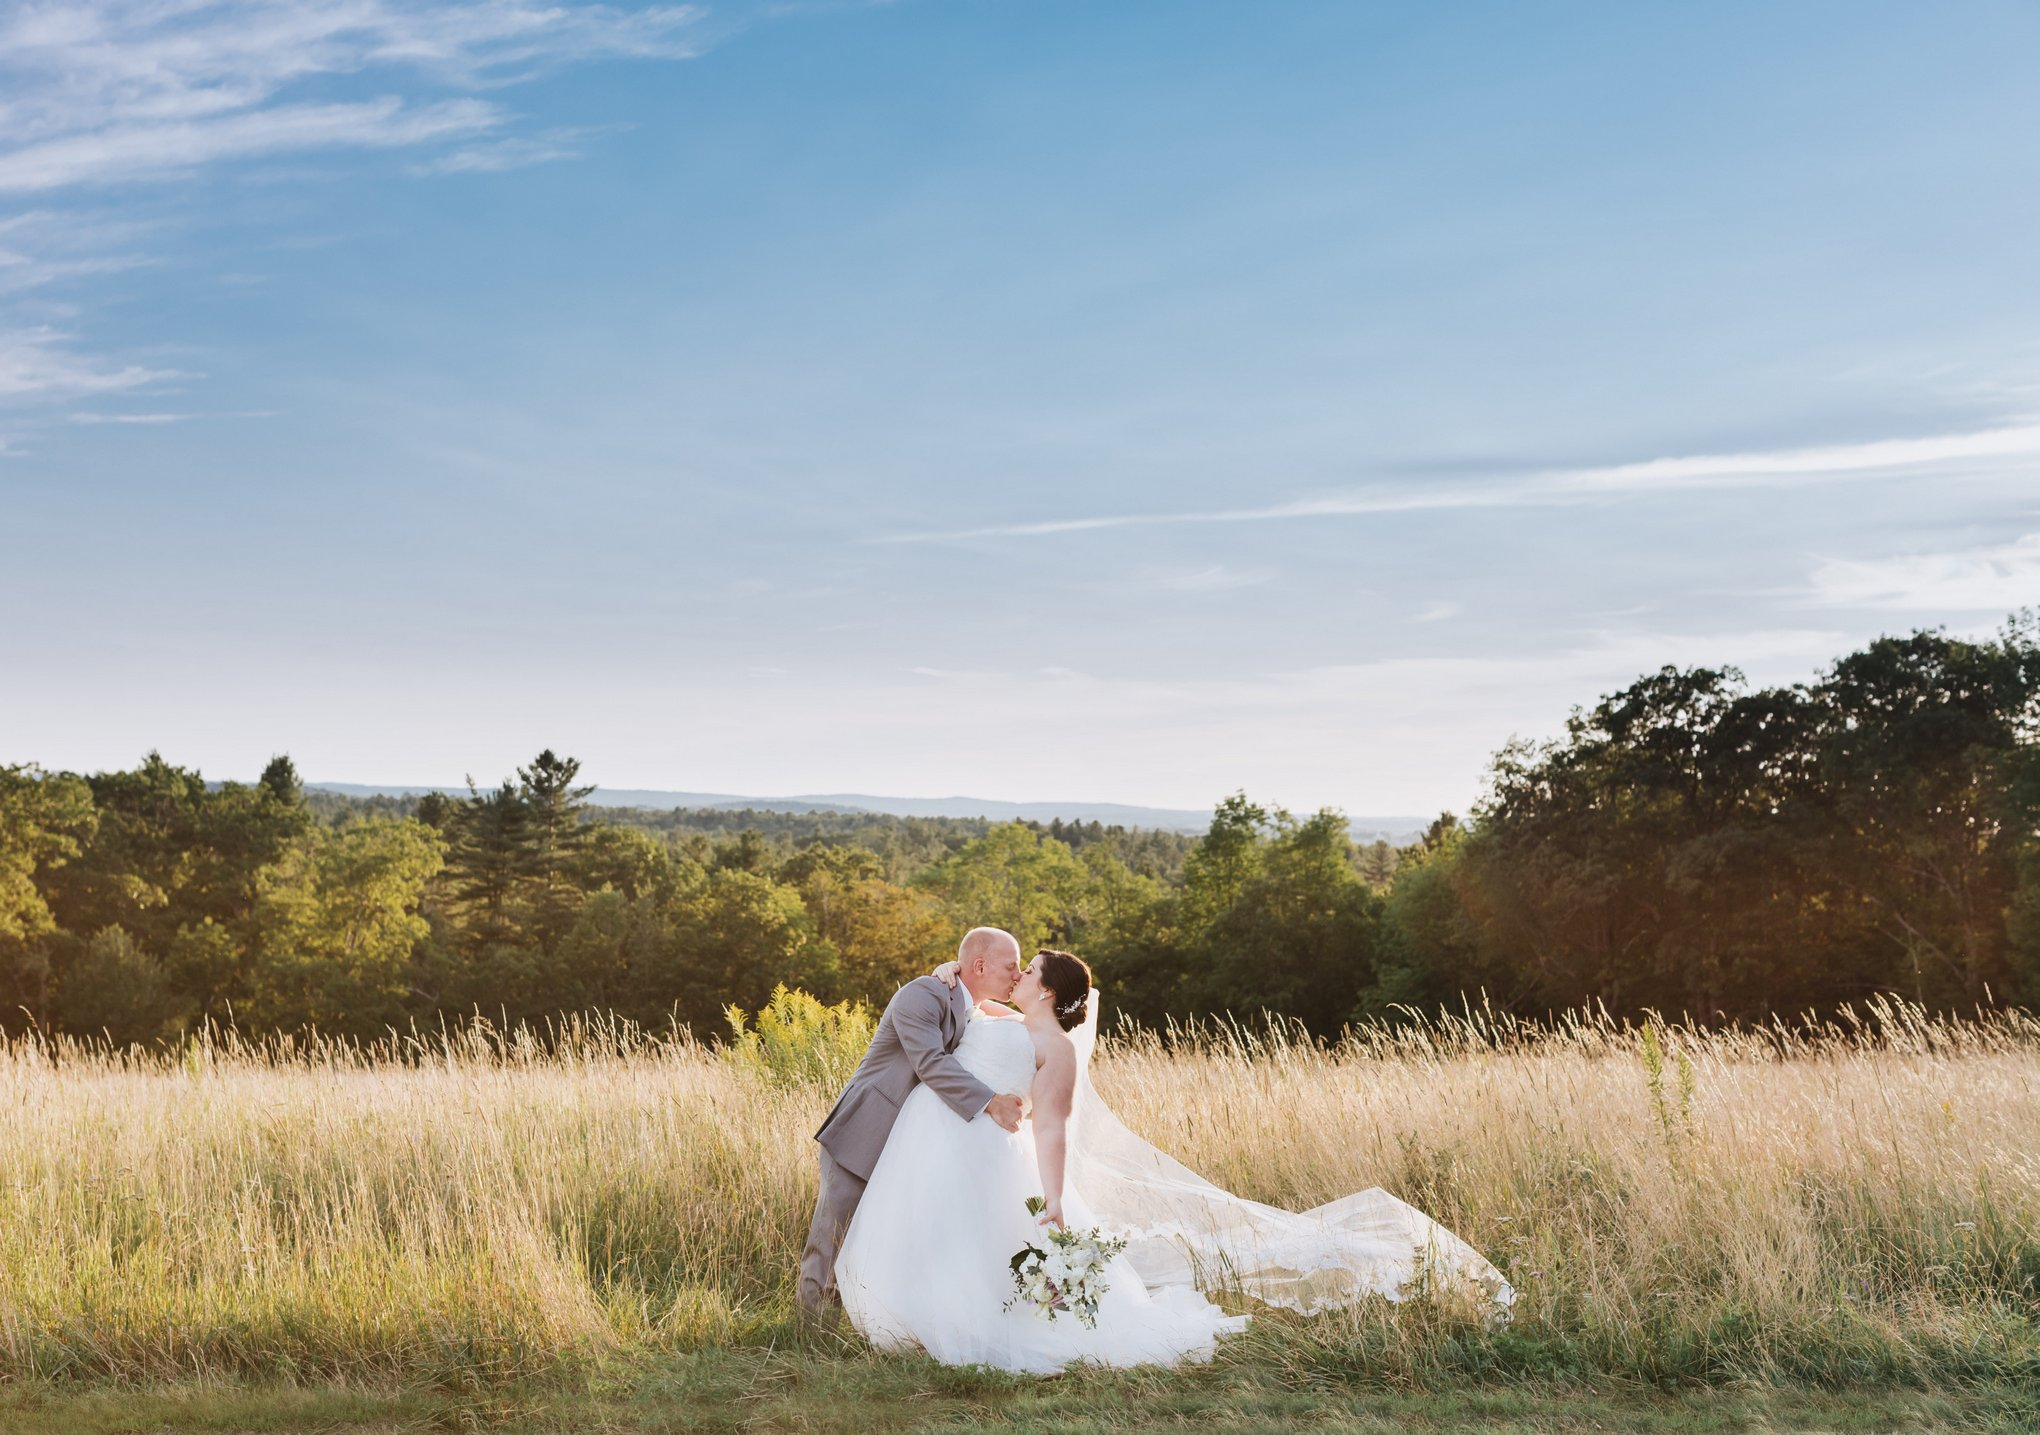 Harrington_Farm_Wedding_Photographer-42.jpg